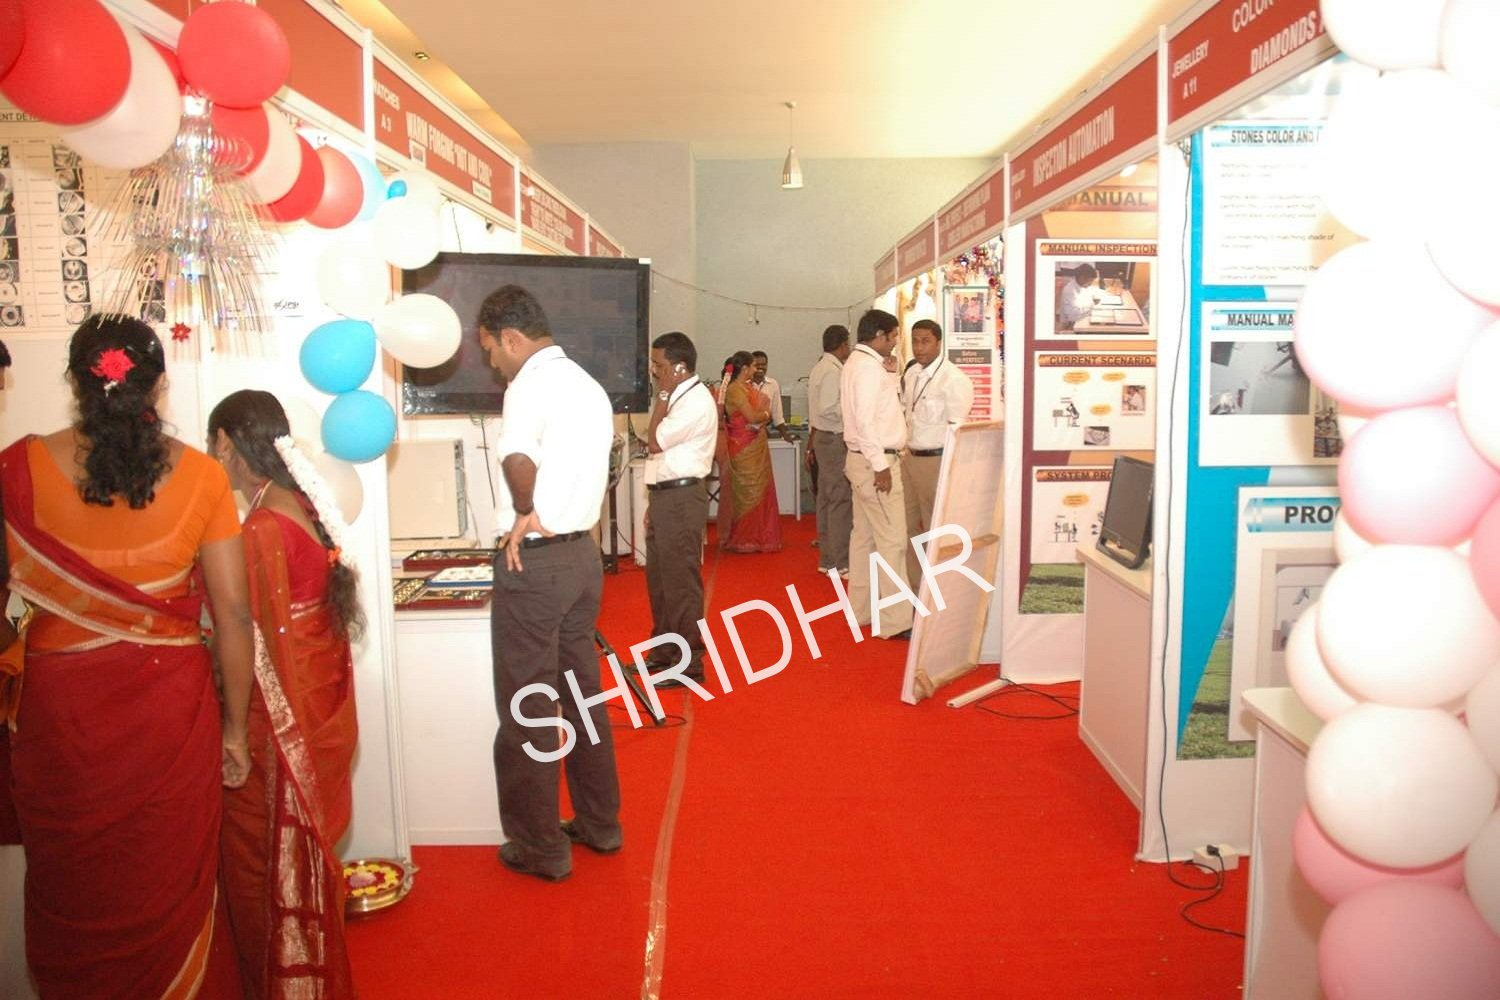 exhibition stalls and synthetic red carpets for rent in bangalore shridhar tent house